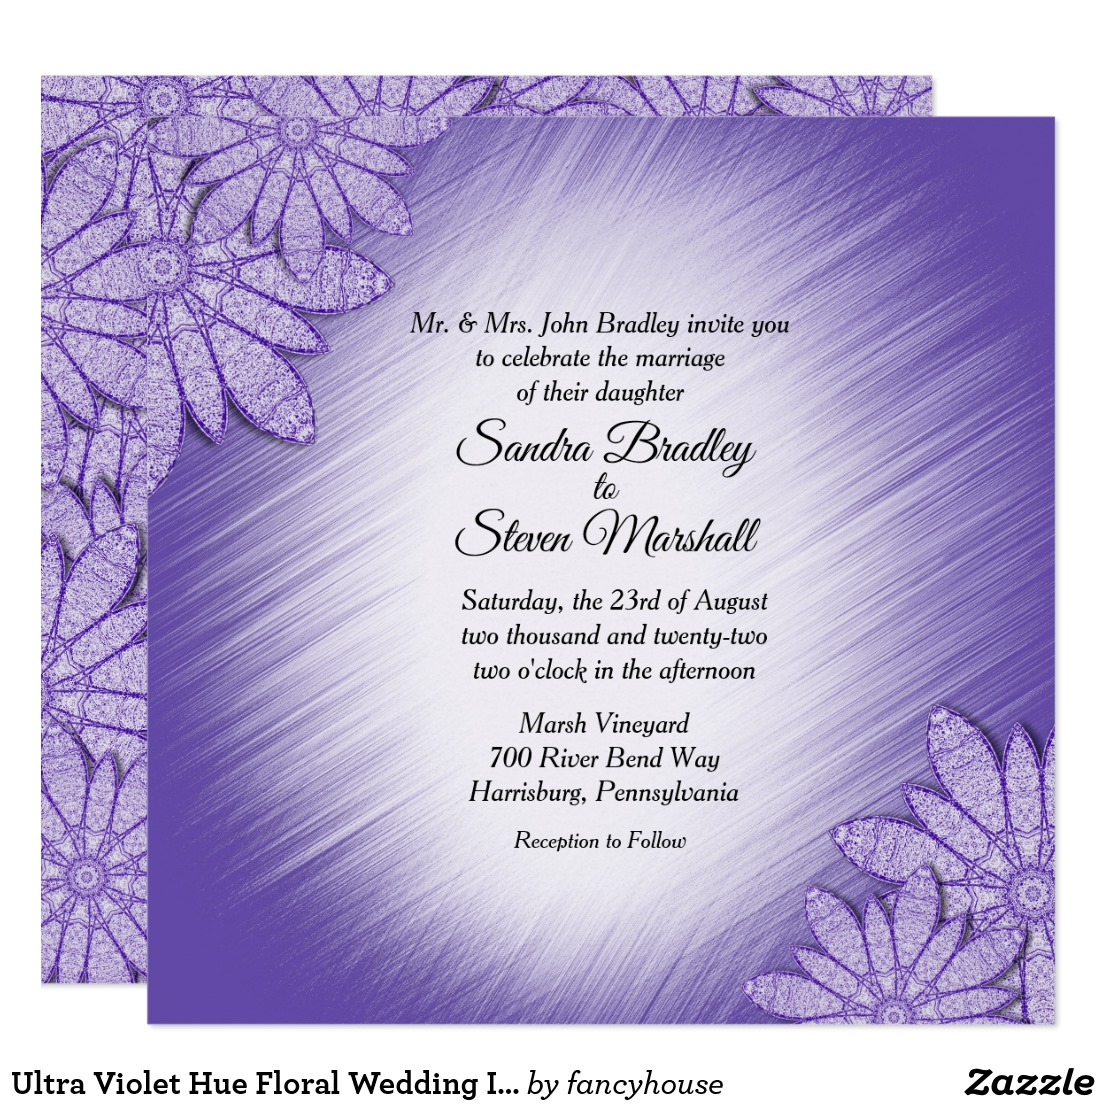 Ultra Violet Hue Floral Wedding Invitation